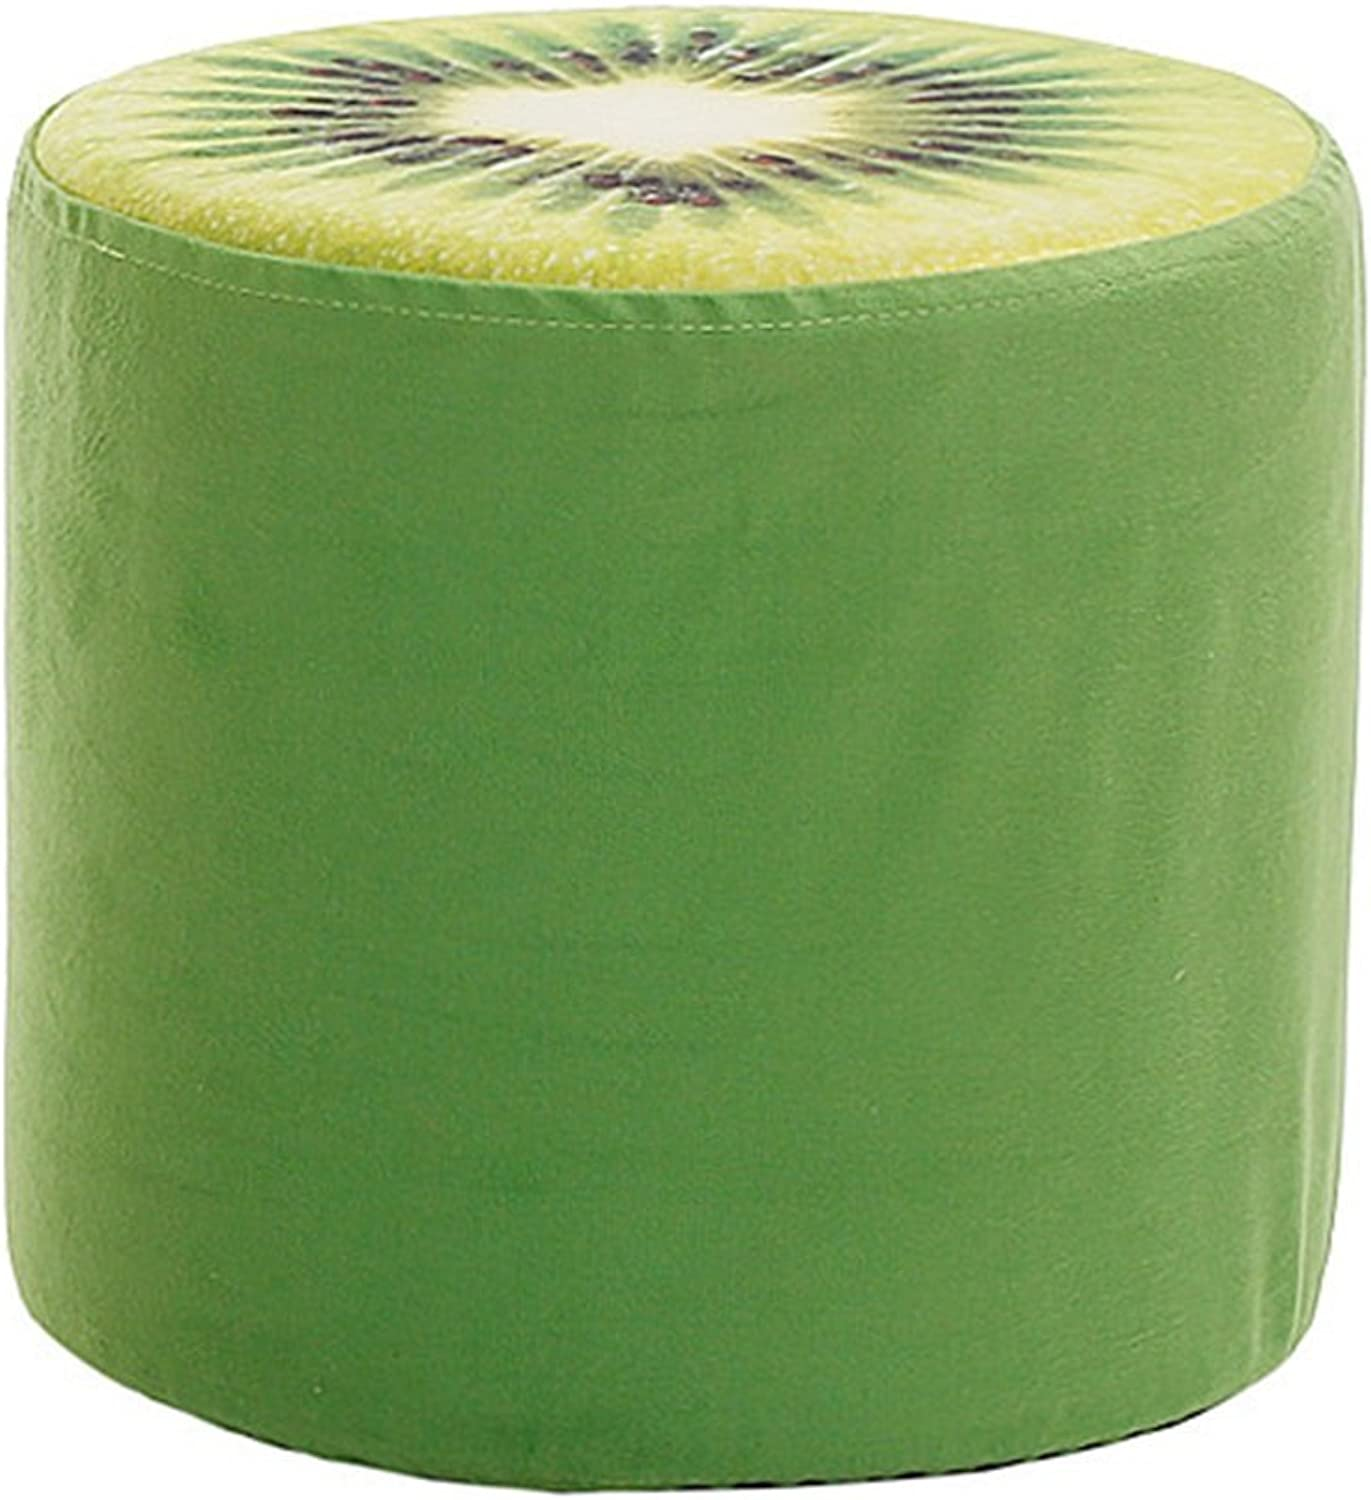 Jingbiao Creative non-slip low stool cloth stool living room sofa stool - small stool (color    5)